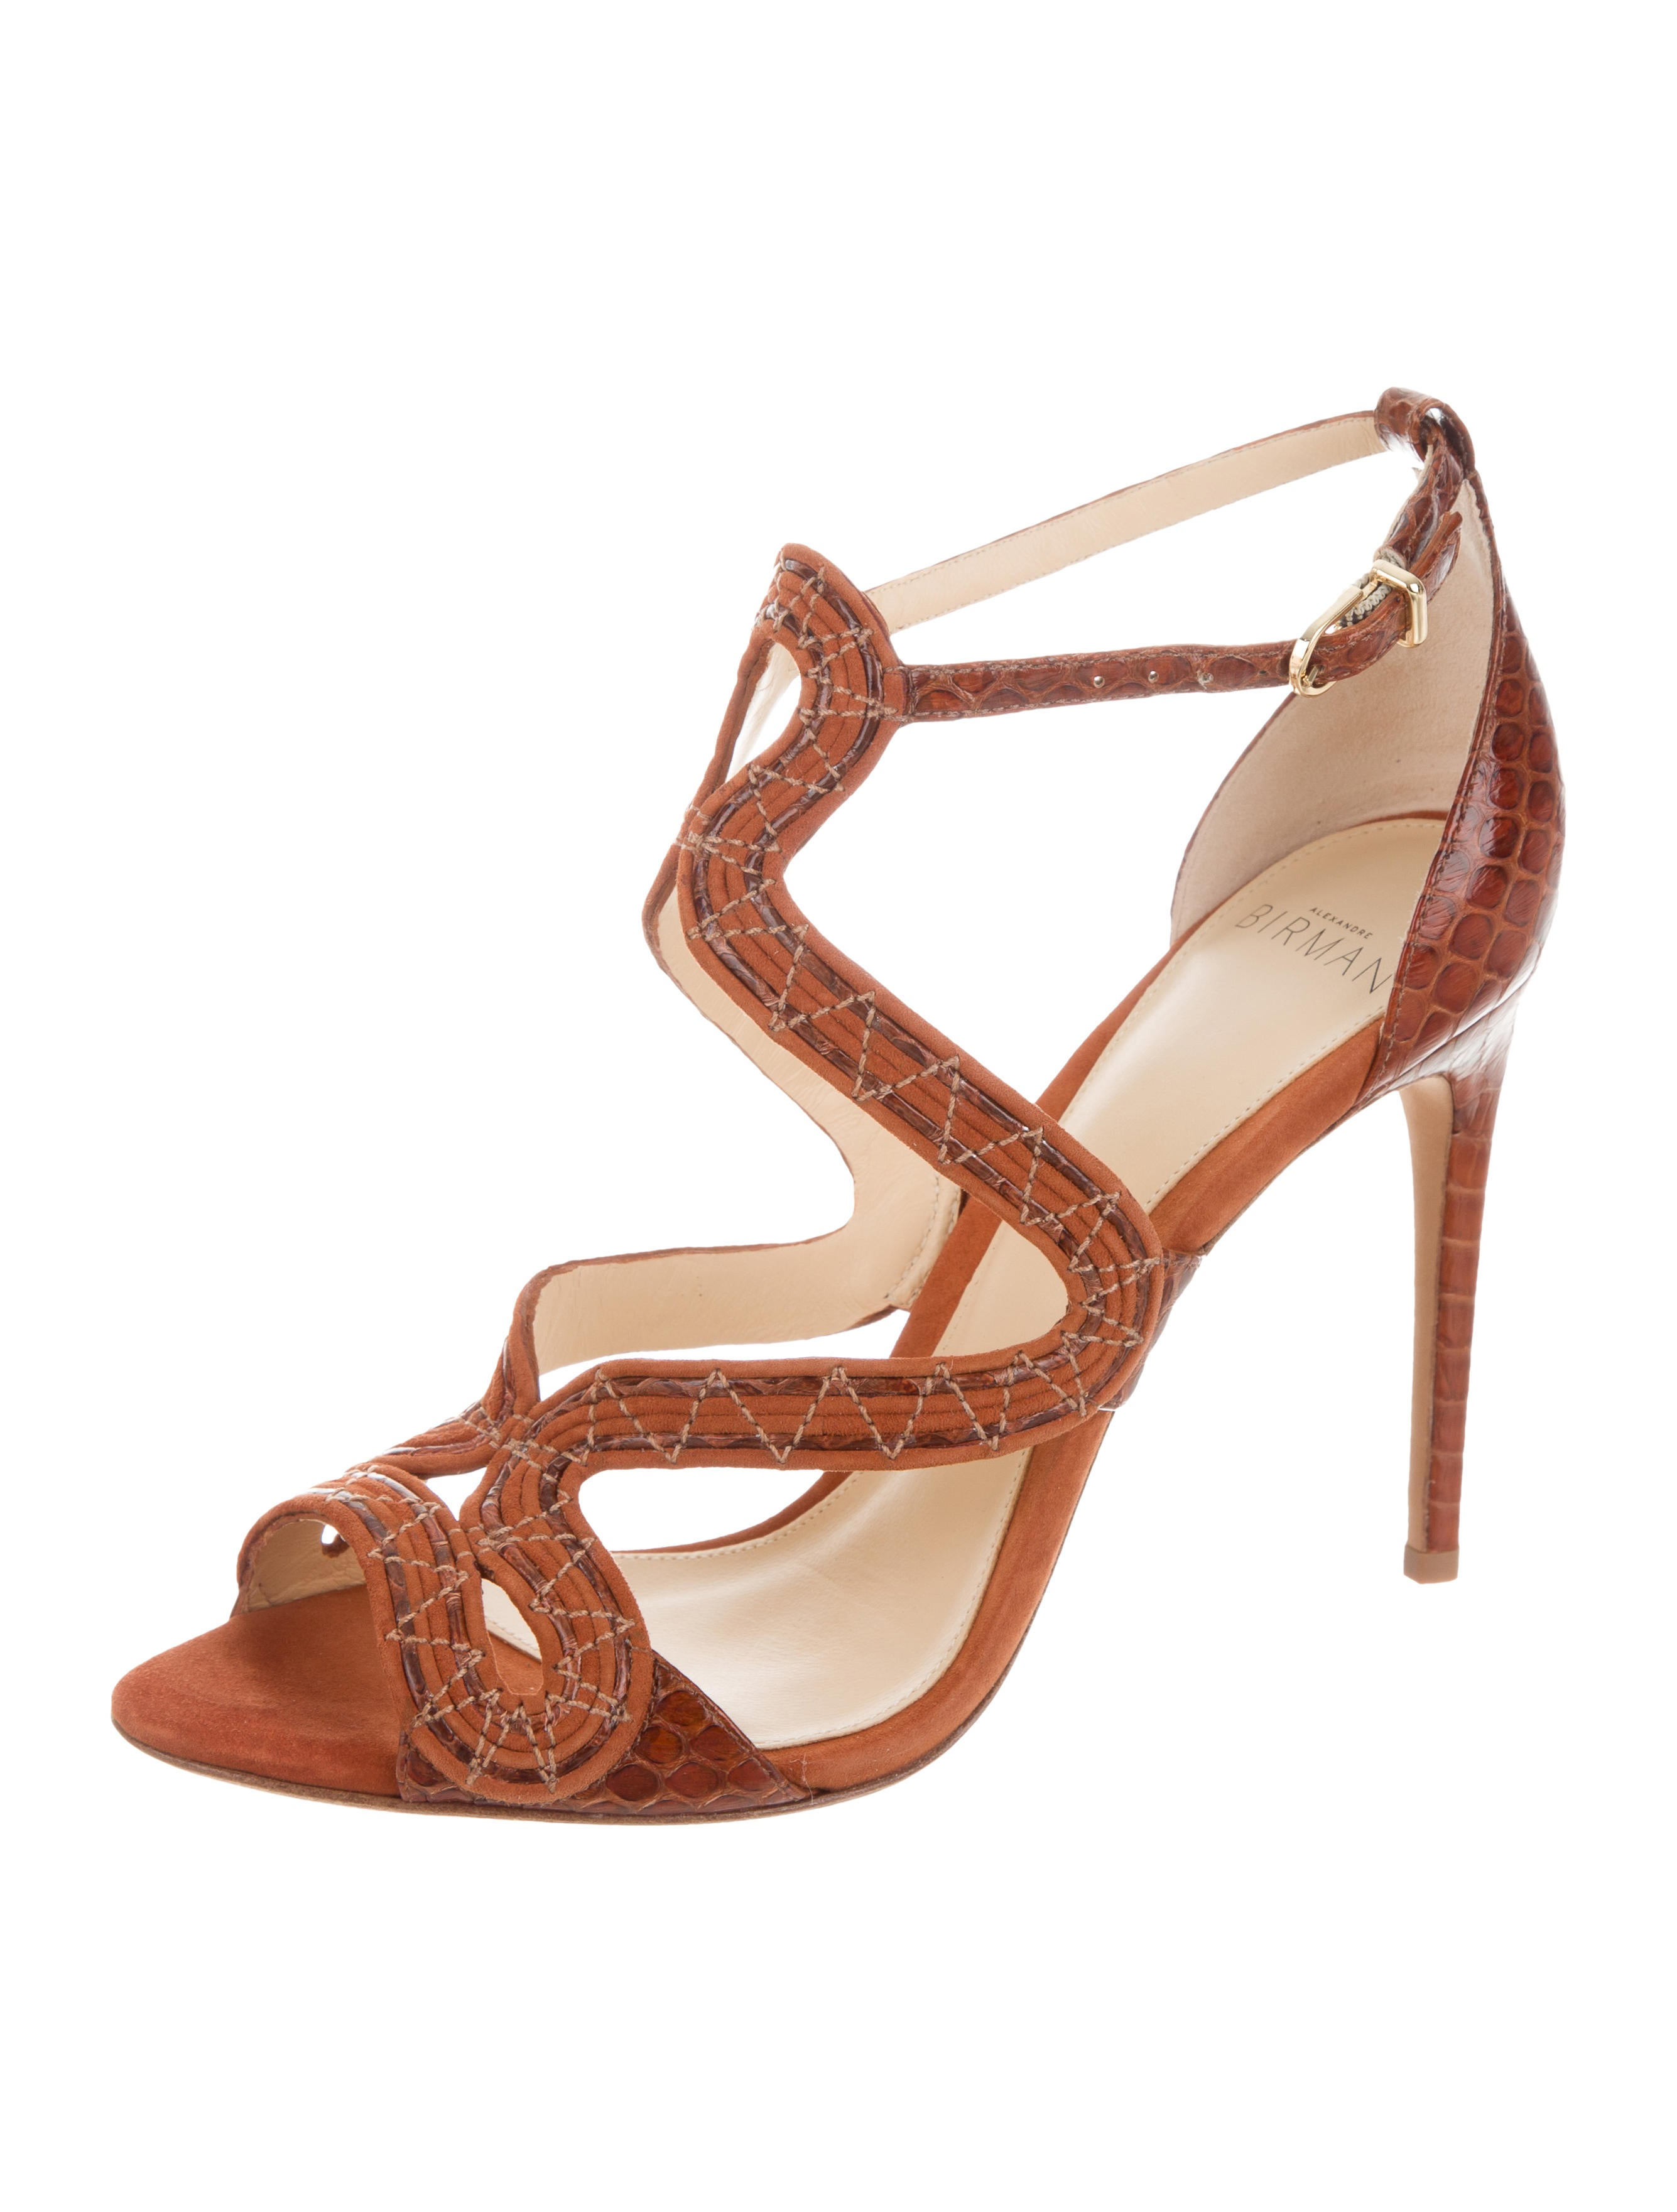 Alexandre Birman New Alice Snakeskin Sandals w/ Tags outlet cost jybQ6ox